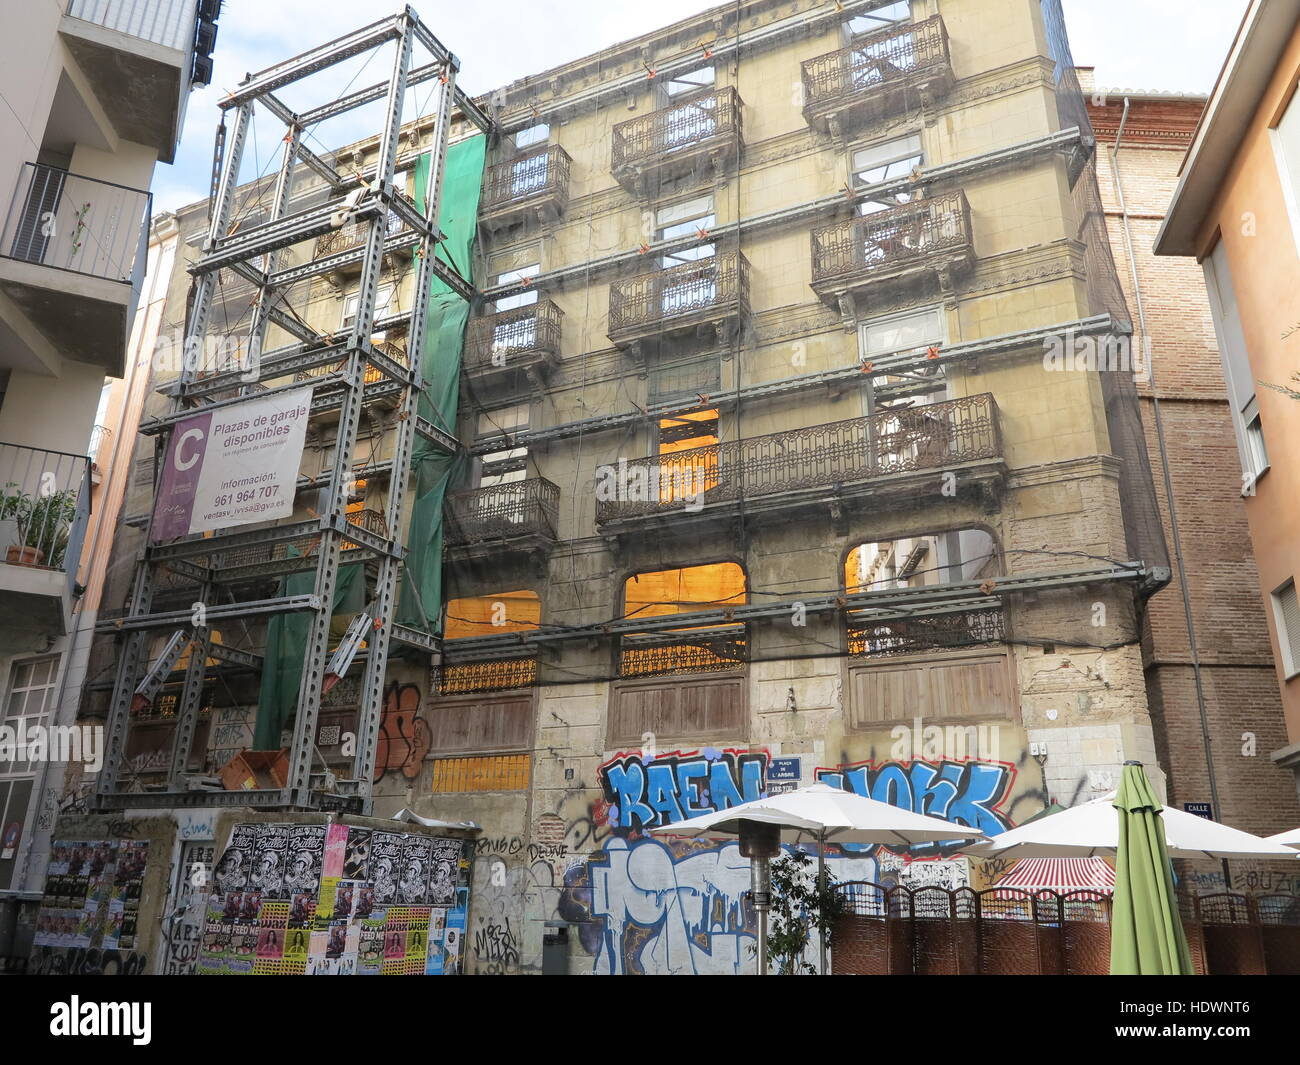 Steel structure shoring up old building in Valencia, Spain - Stock Image